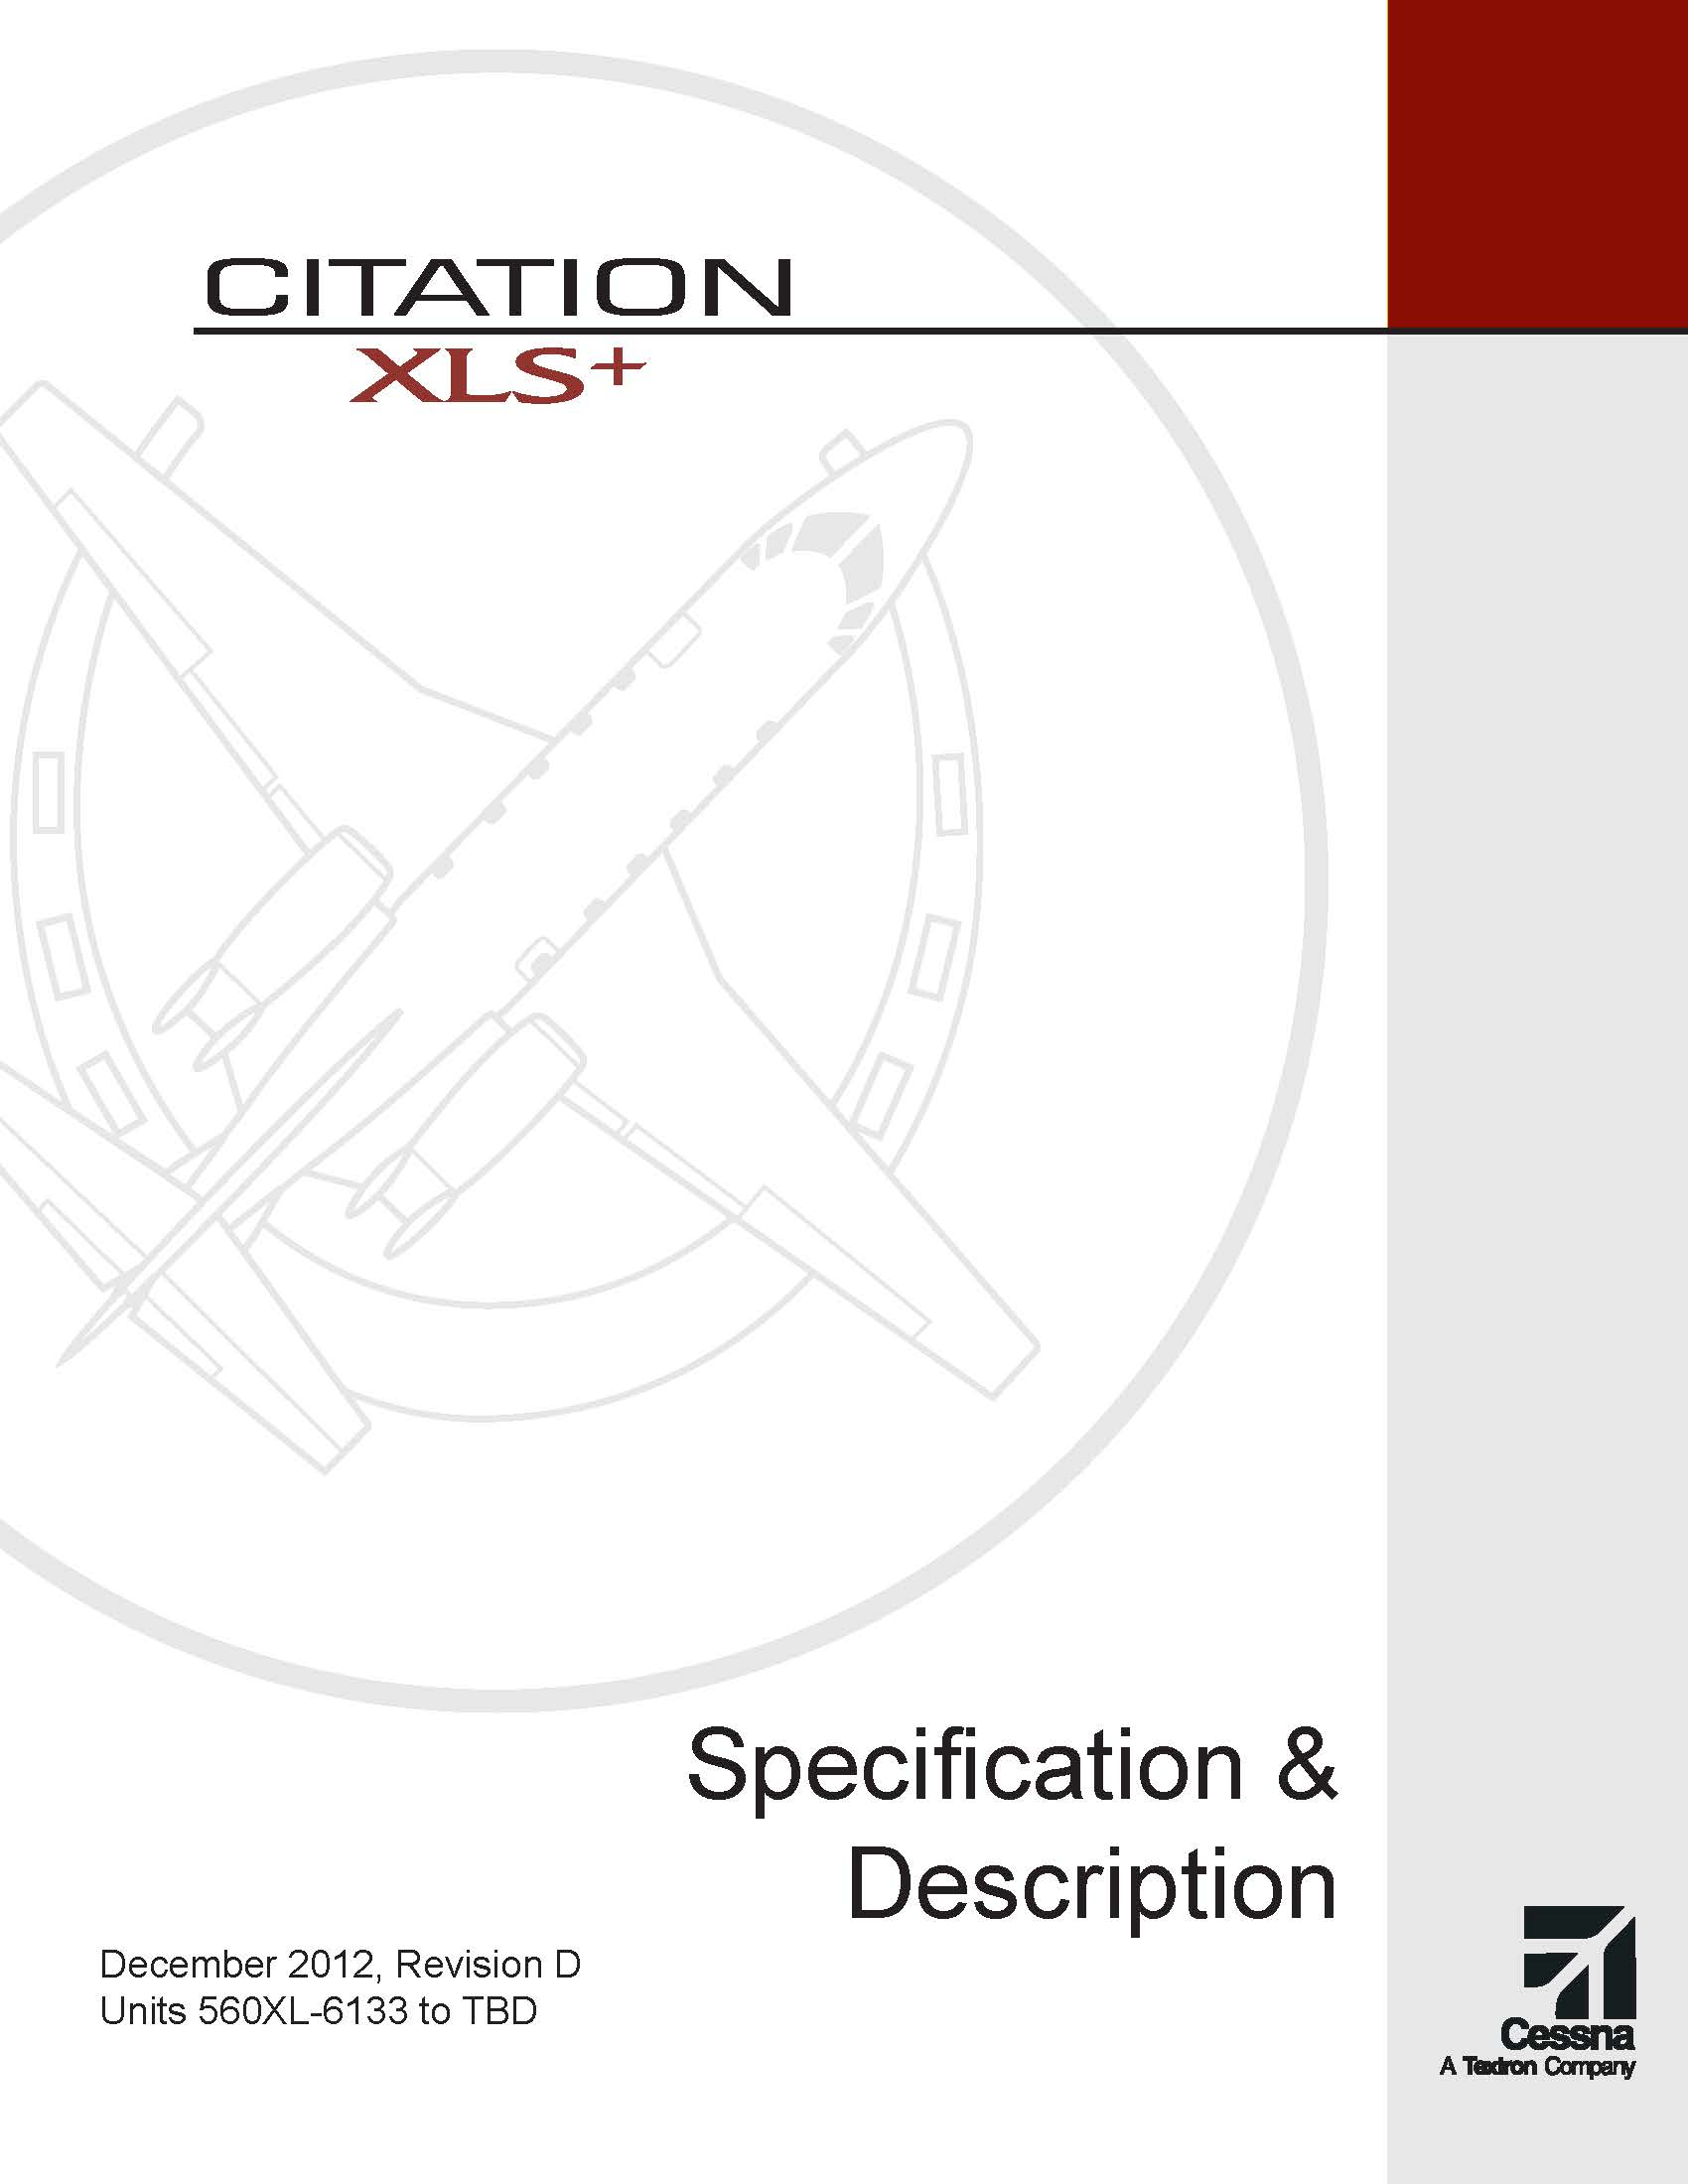 Citation XLS+ spec and description electronic brochure